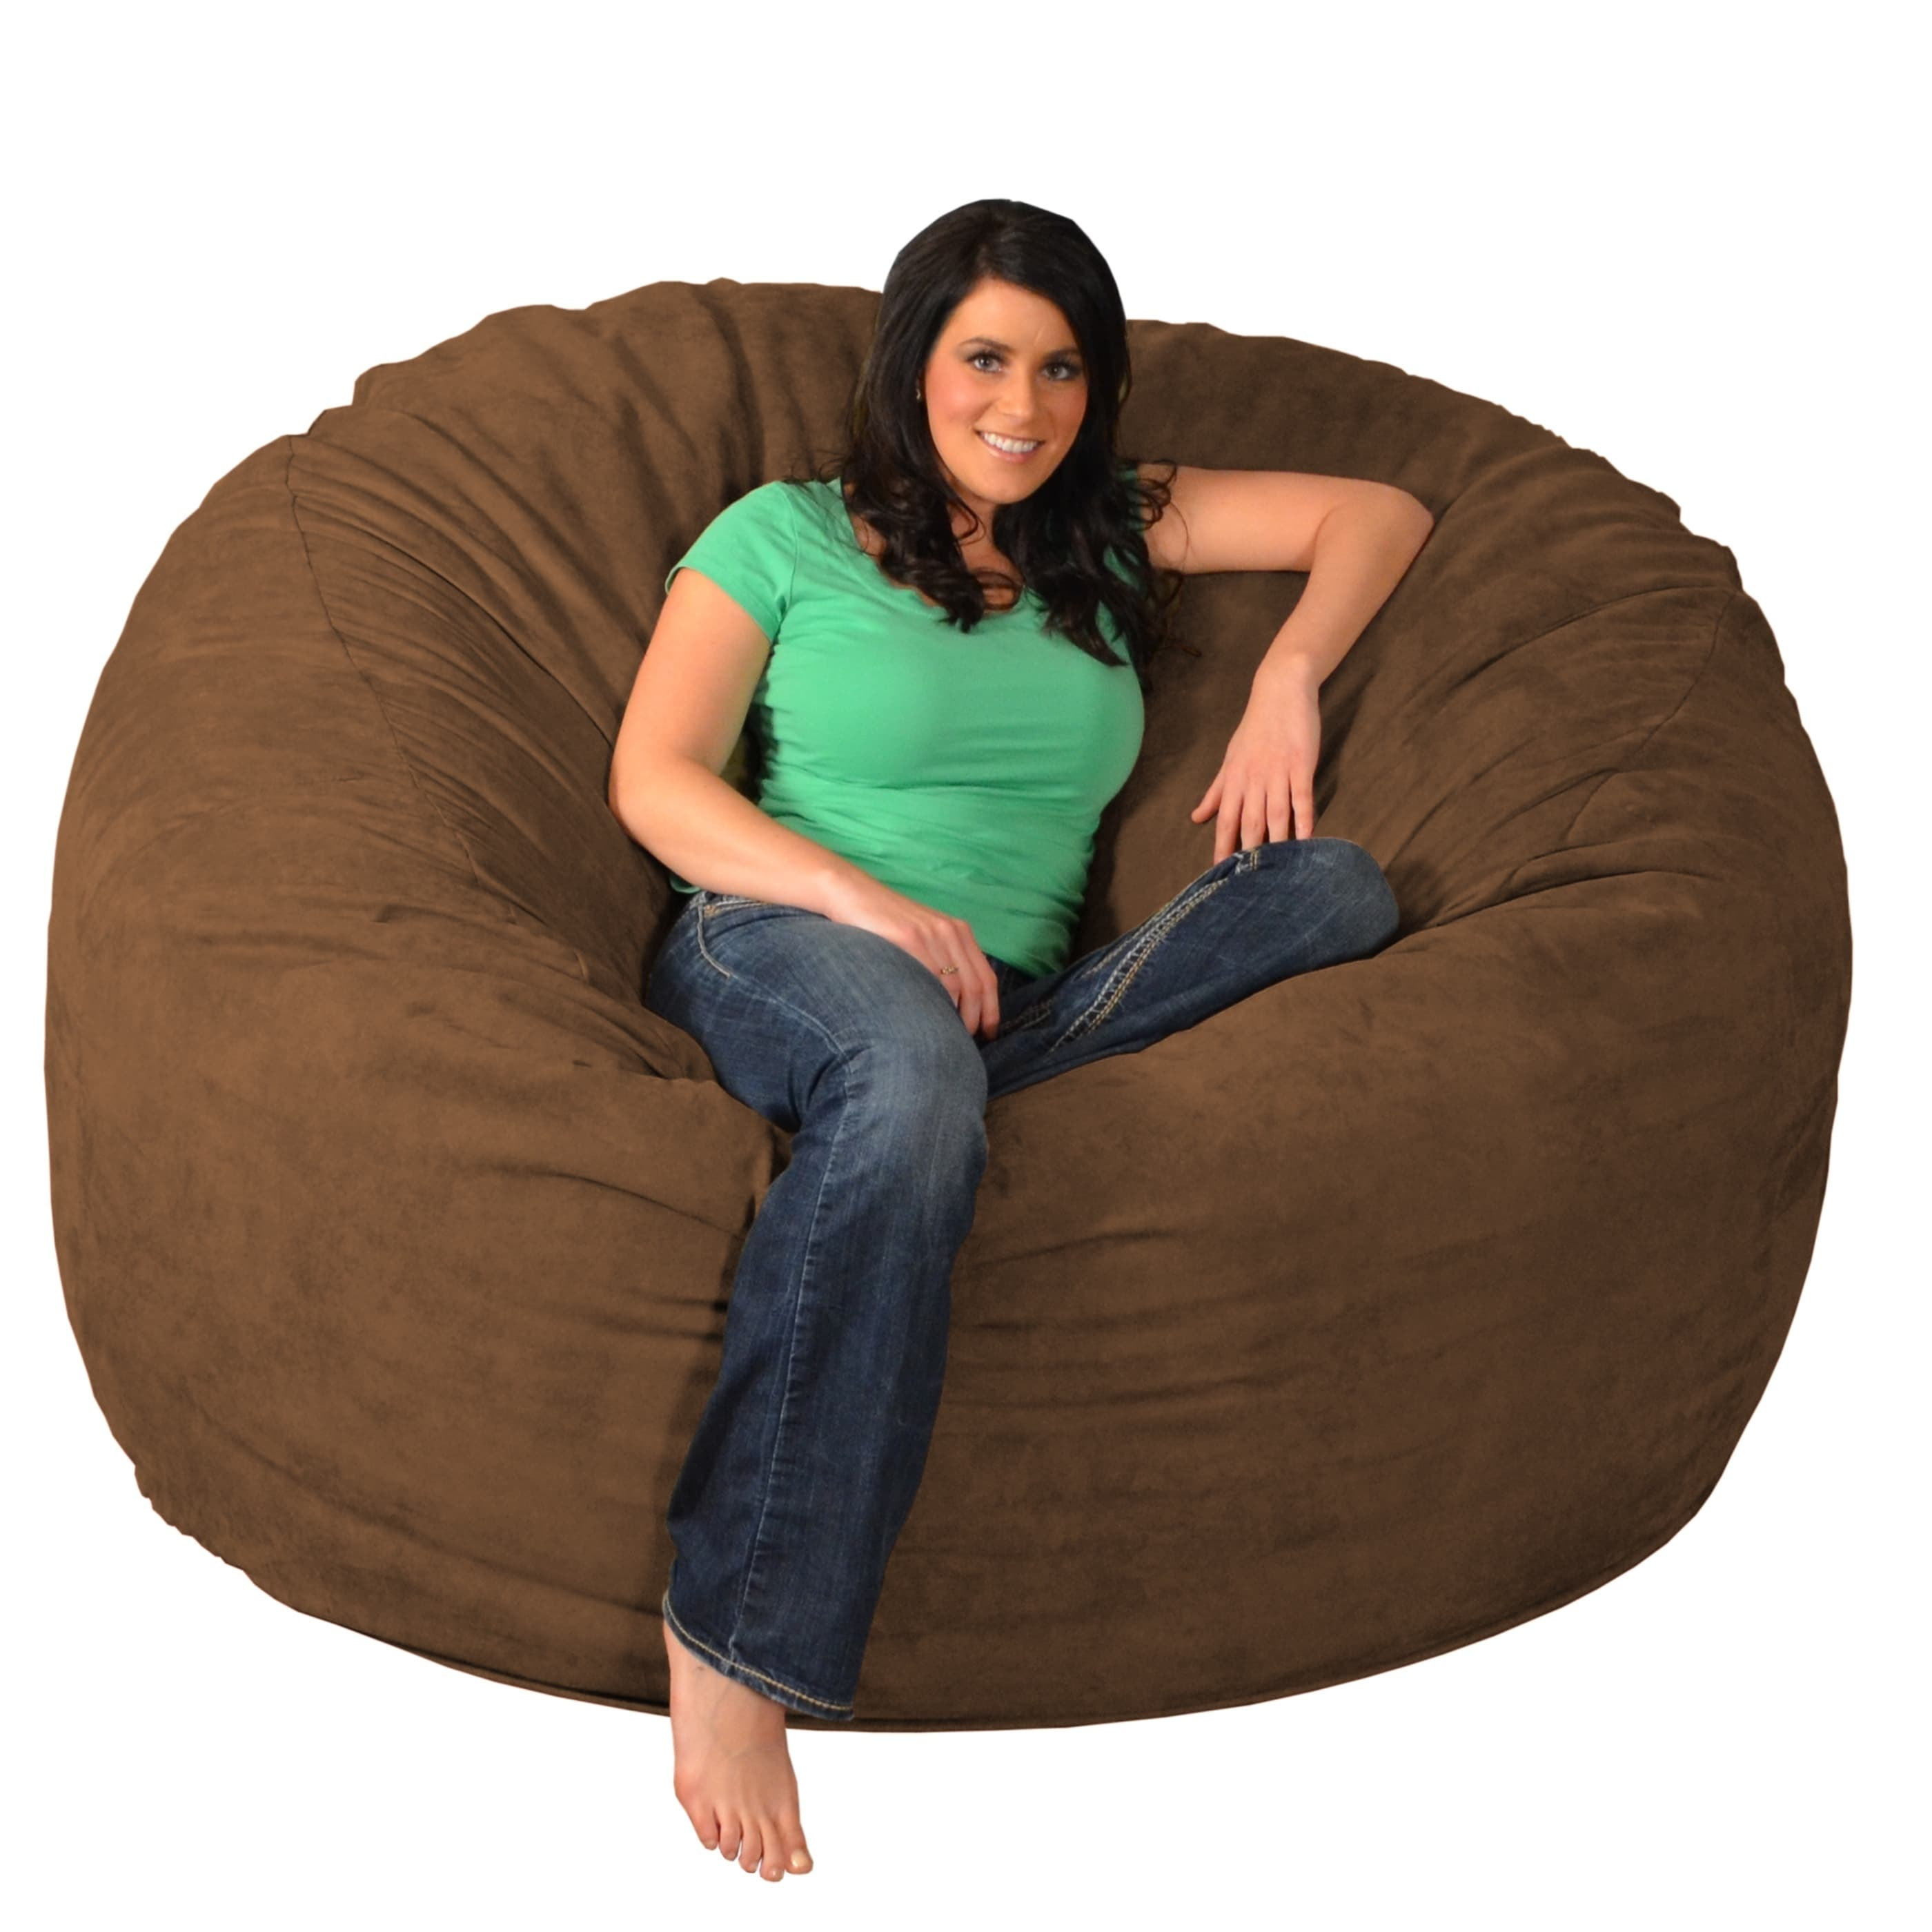 Shop Giant Memory Foam Bean Bag 6 Foot Chair   Free Shipping Today    Overstock.com   9936912